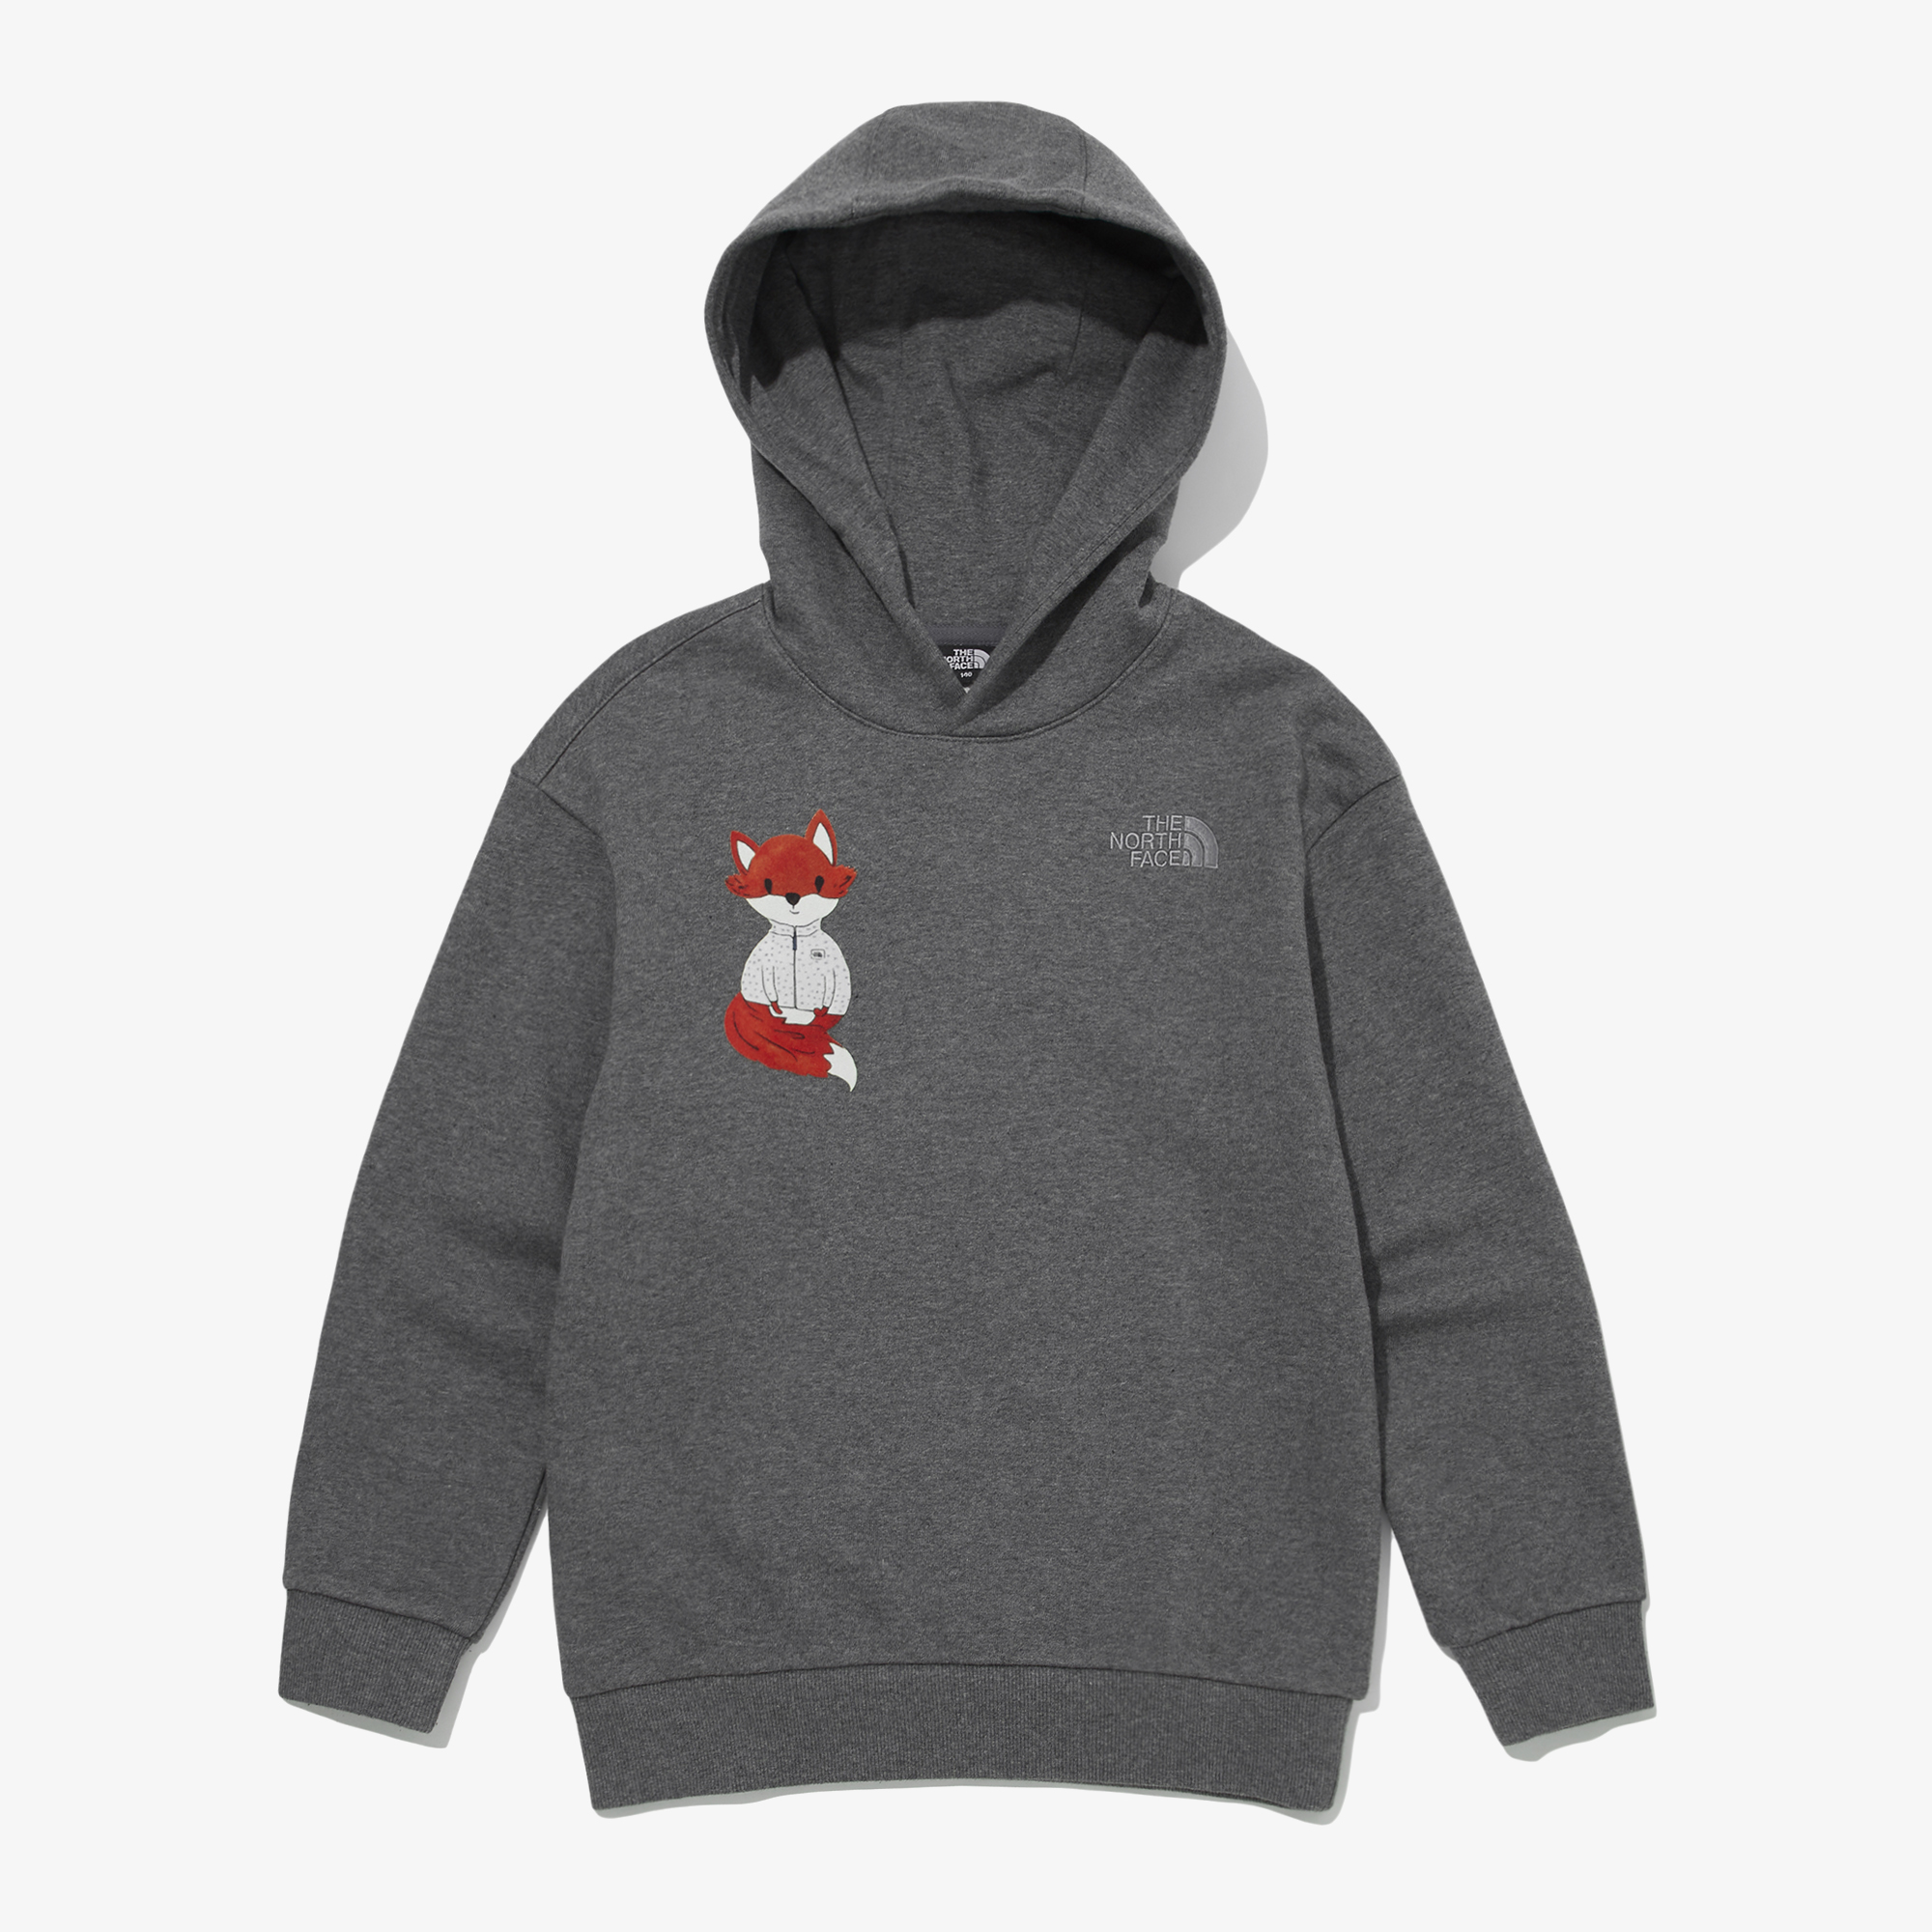 THE NORTH FACE-K'S BOMA HOODIE